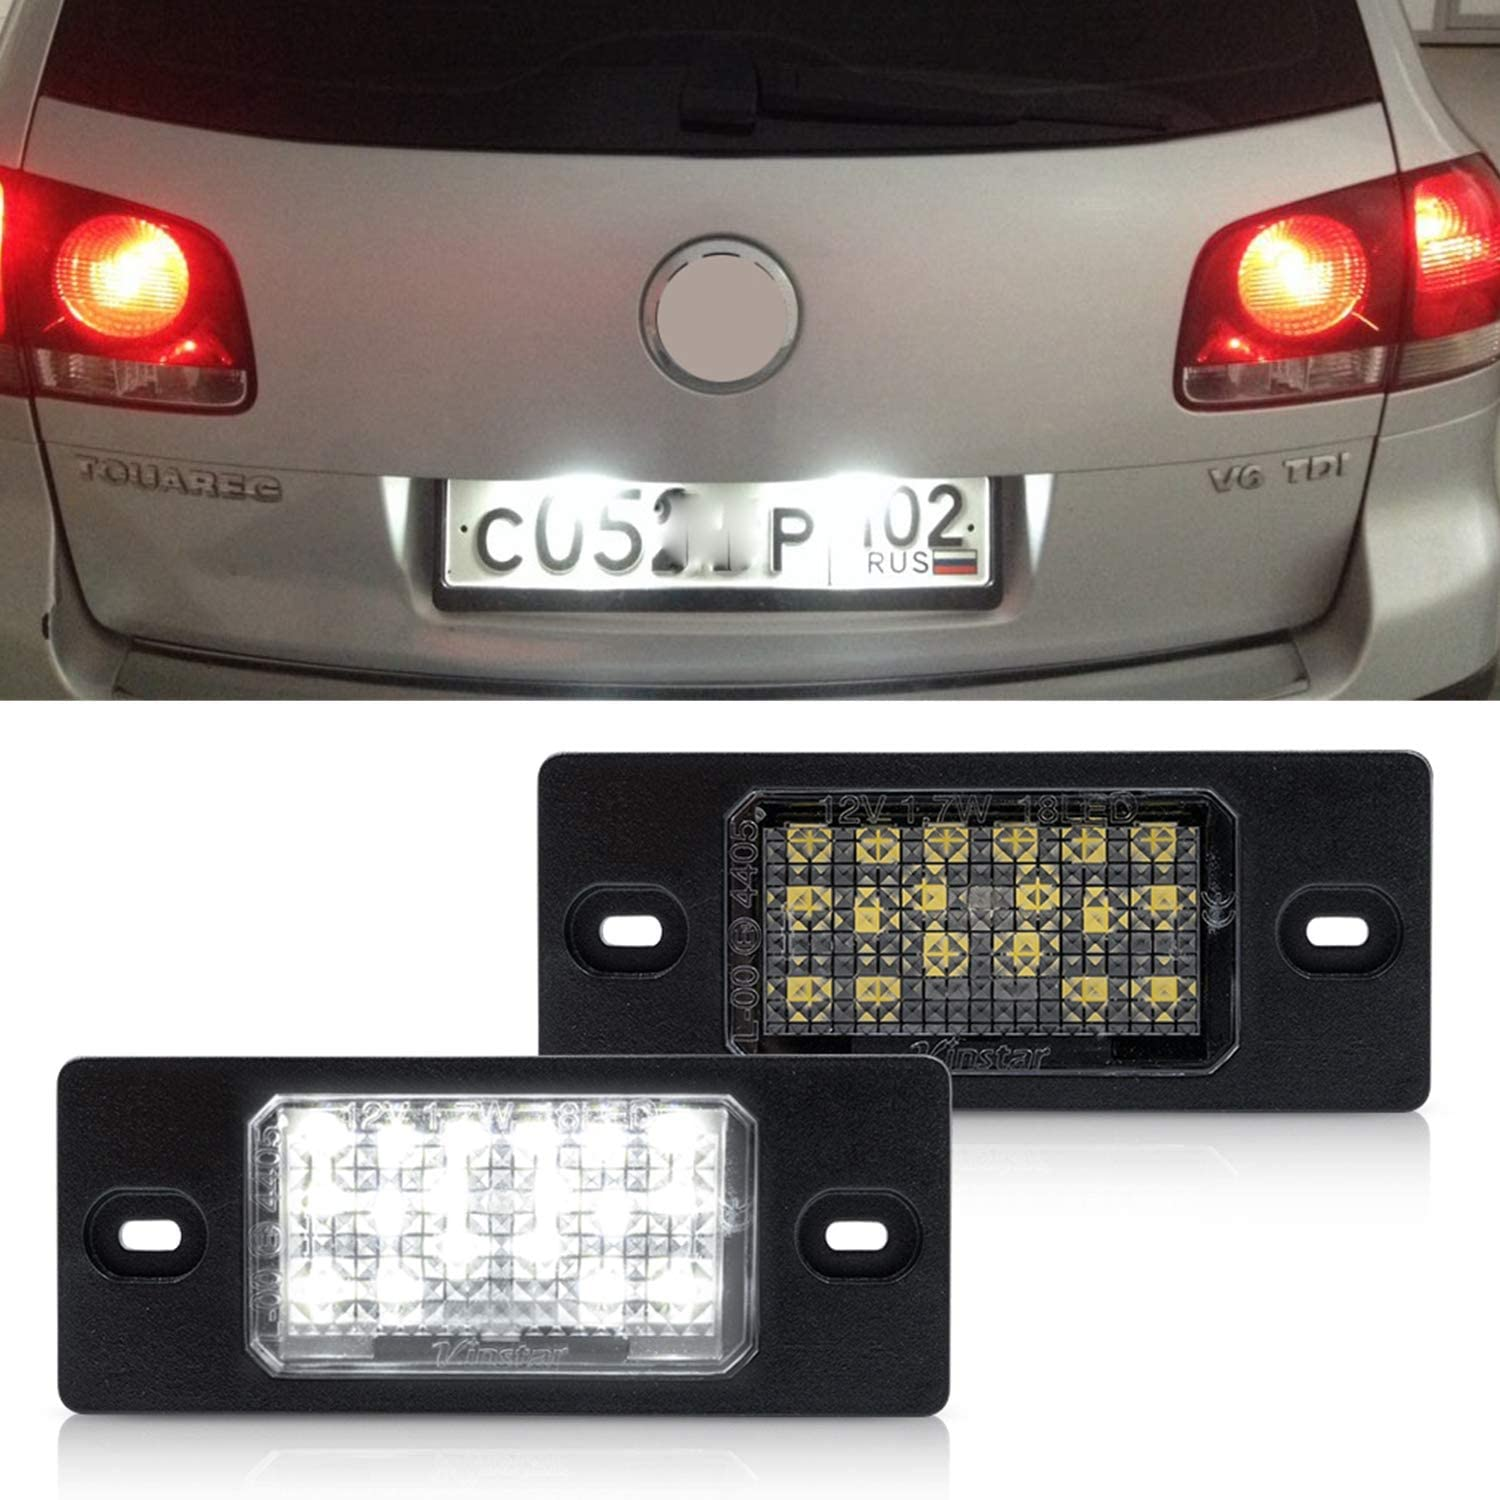 White LED License Plate Lights for Licens NSLUMO Led Fixed price sale VW Clearance SALE! Limited time! Number -